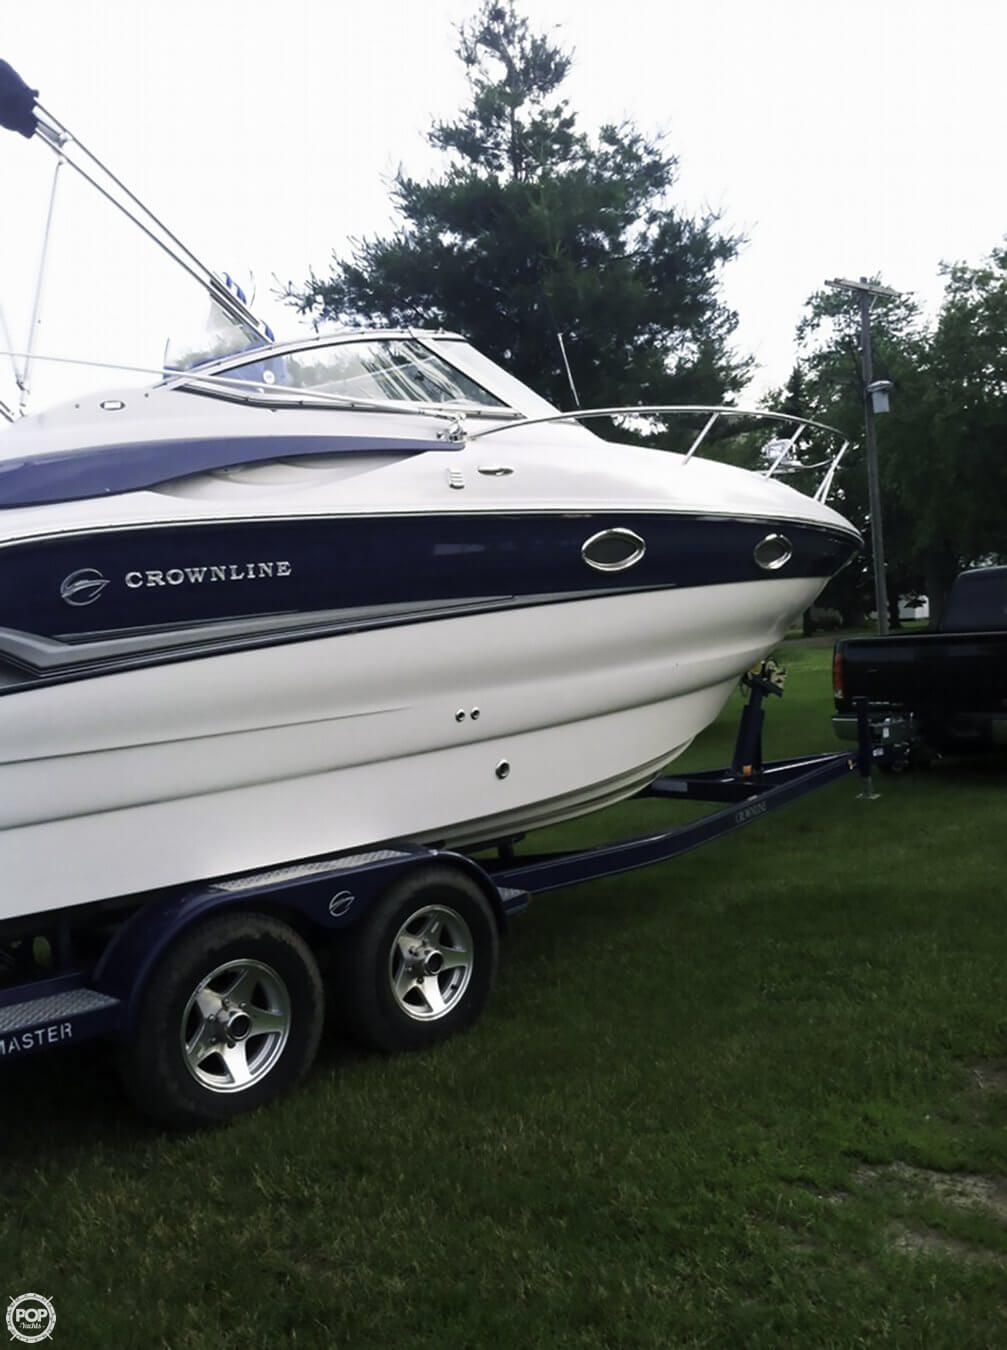 Crownline Quality Full Camper Canvas Underwater Lights And Owner Says Freshwater Use Only Cruisers Underwater Lights Boats For Sale